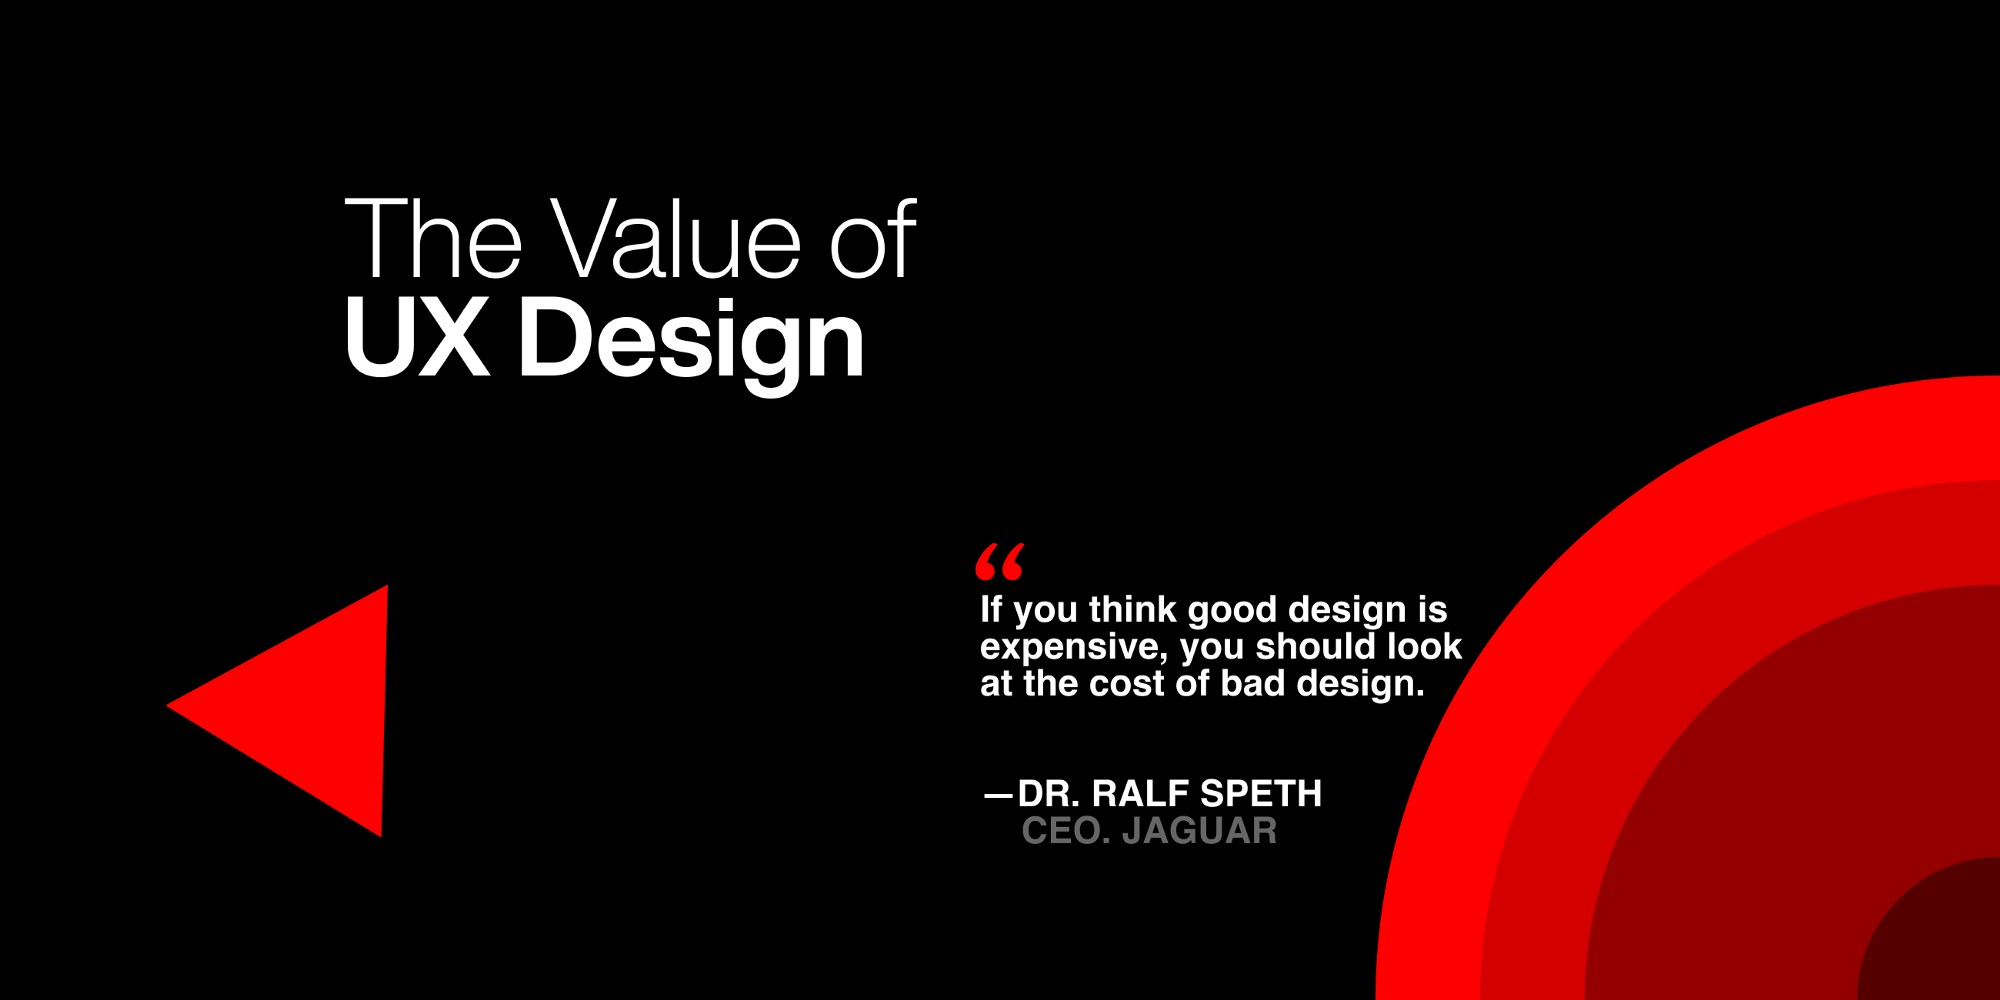 Cover Image with a quote — If you think good design is expensive, you should look at the cost of bad design. by RALF SPETH